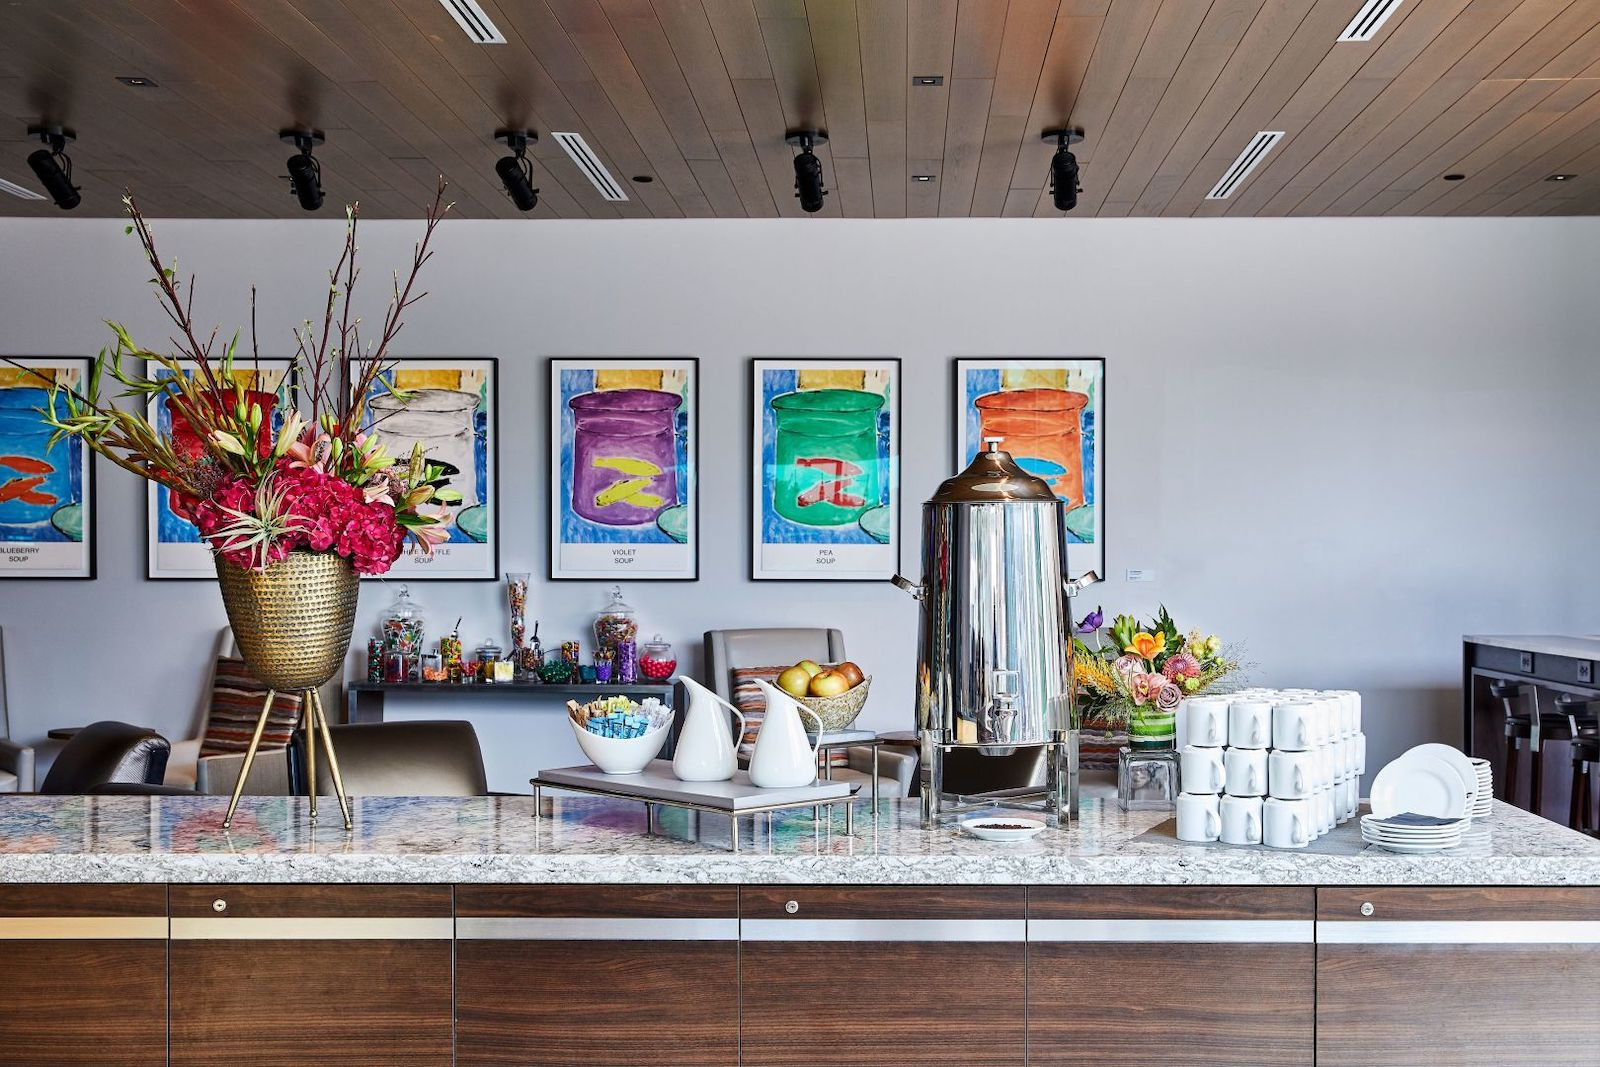 Image of the morning coffee service bar at the Art, a hotel in Denver, CO